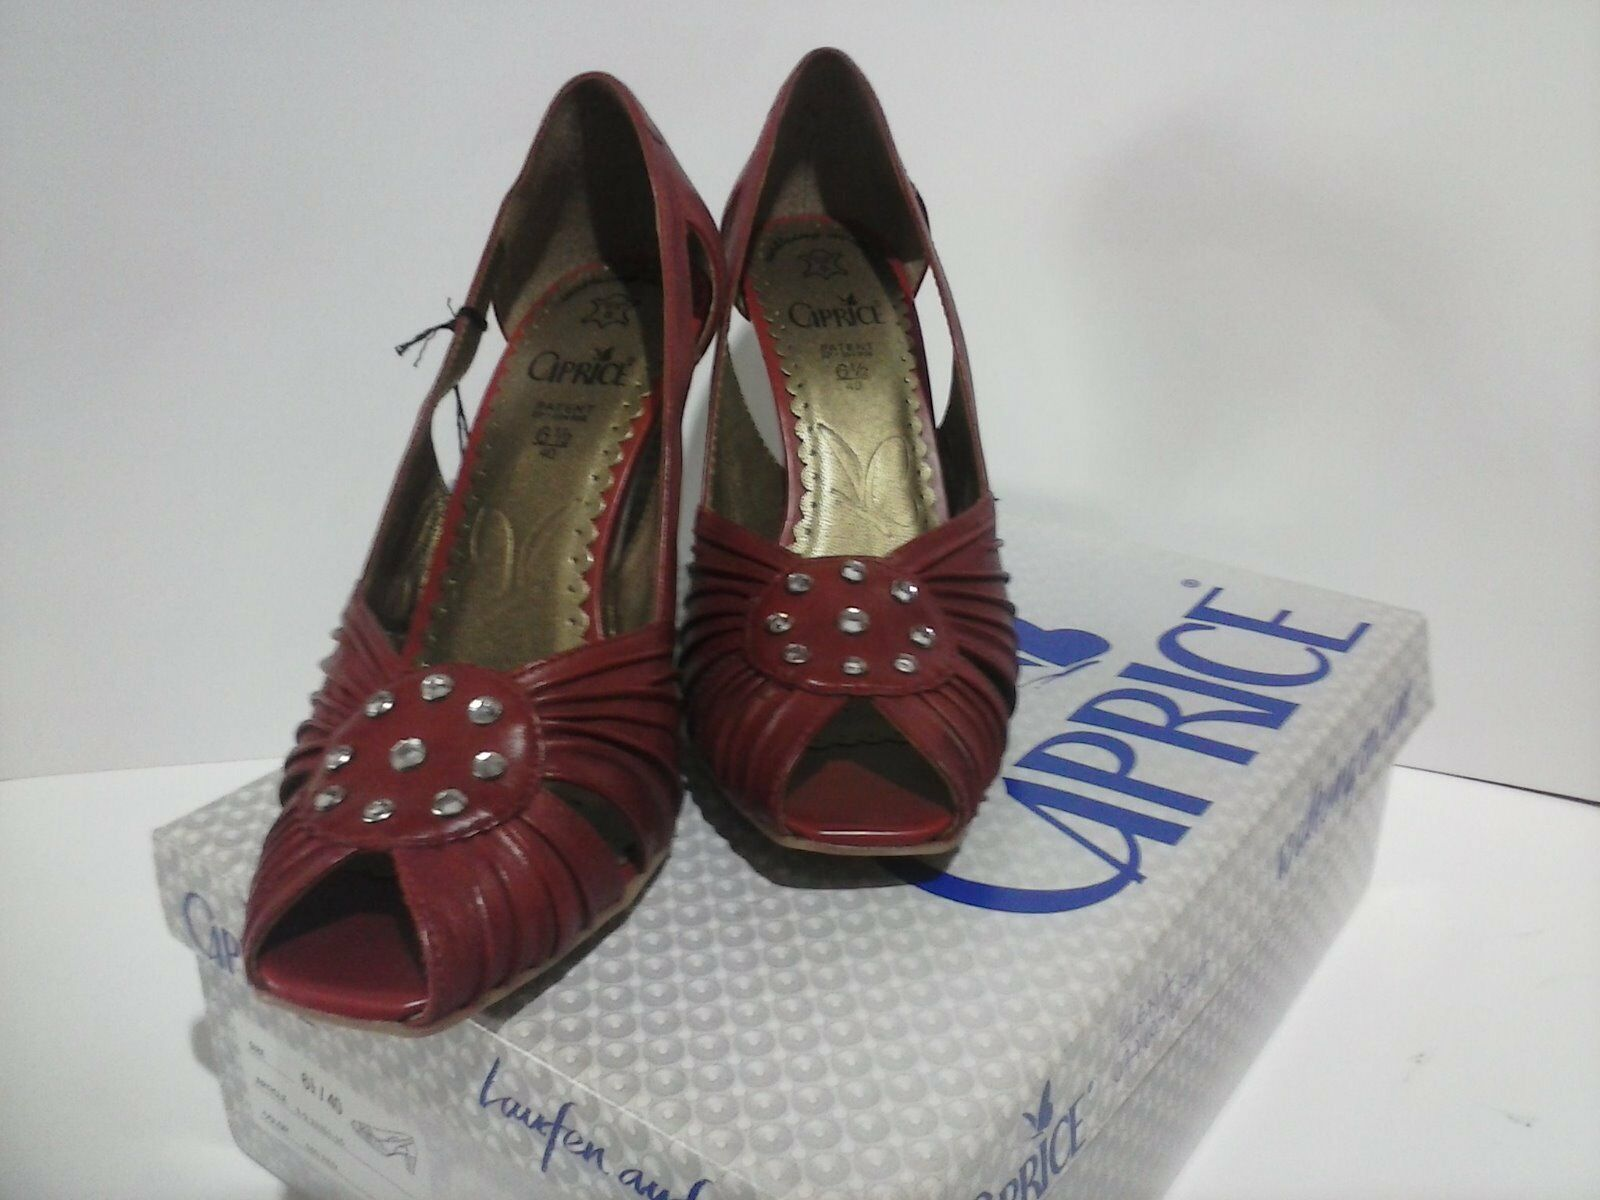 Caprice 9-9-29303-20 en cuir rouge, peep toes, neuf avec boite, taille 4.5 37.5 Bargain